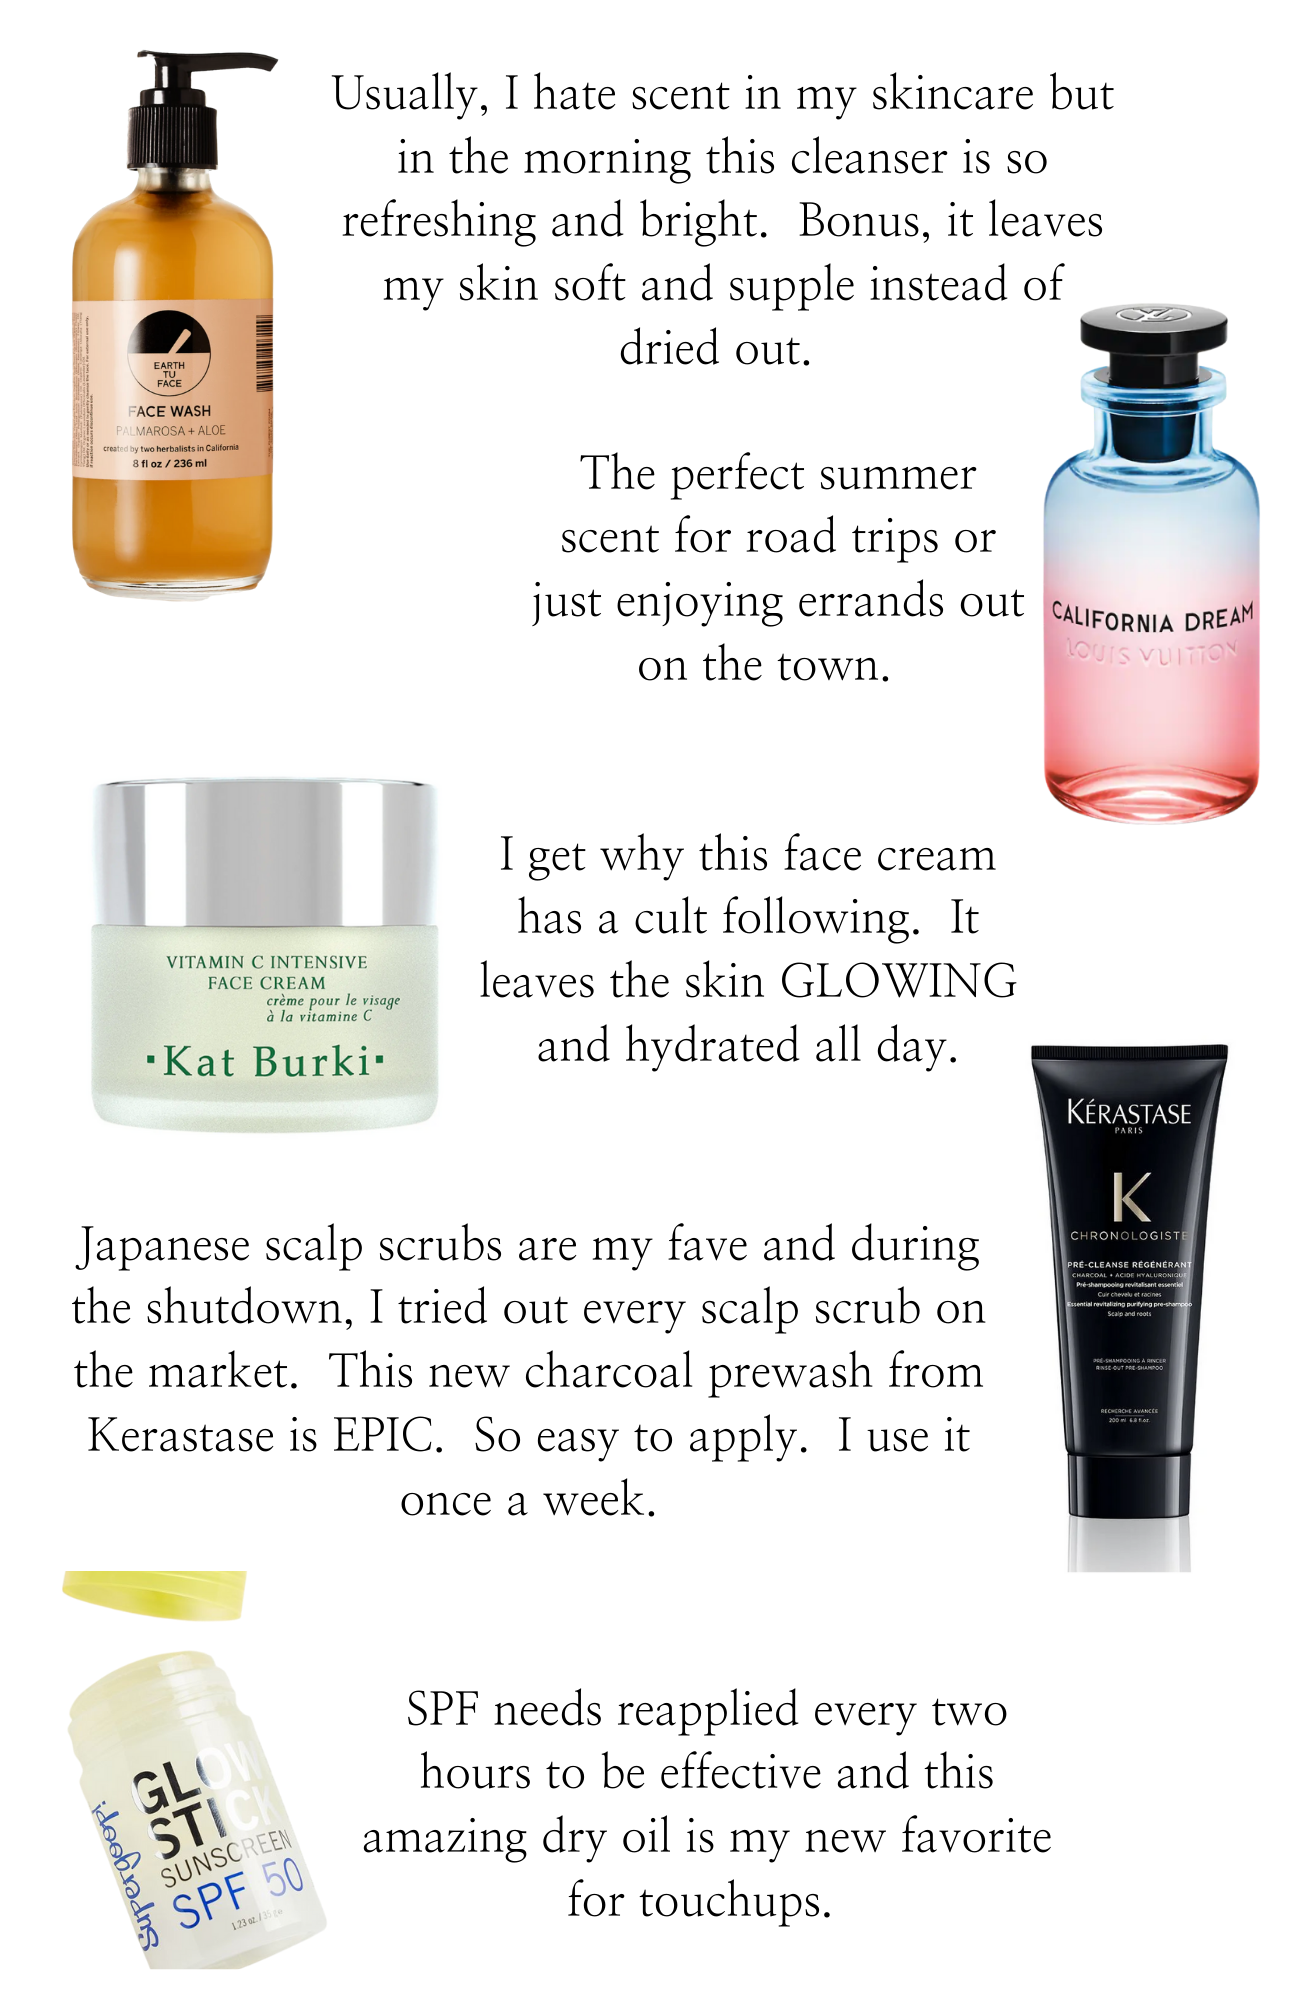 Best Skin Care Products by popular Monterey beauty blog, Haute Beauty Guide: collage image of Earth tu face face wash, Louis Vuitton California Dream, Kat Burki vitamin c intensive face cream, Keastase chronologiste, and Glow Stick sunscreen.